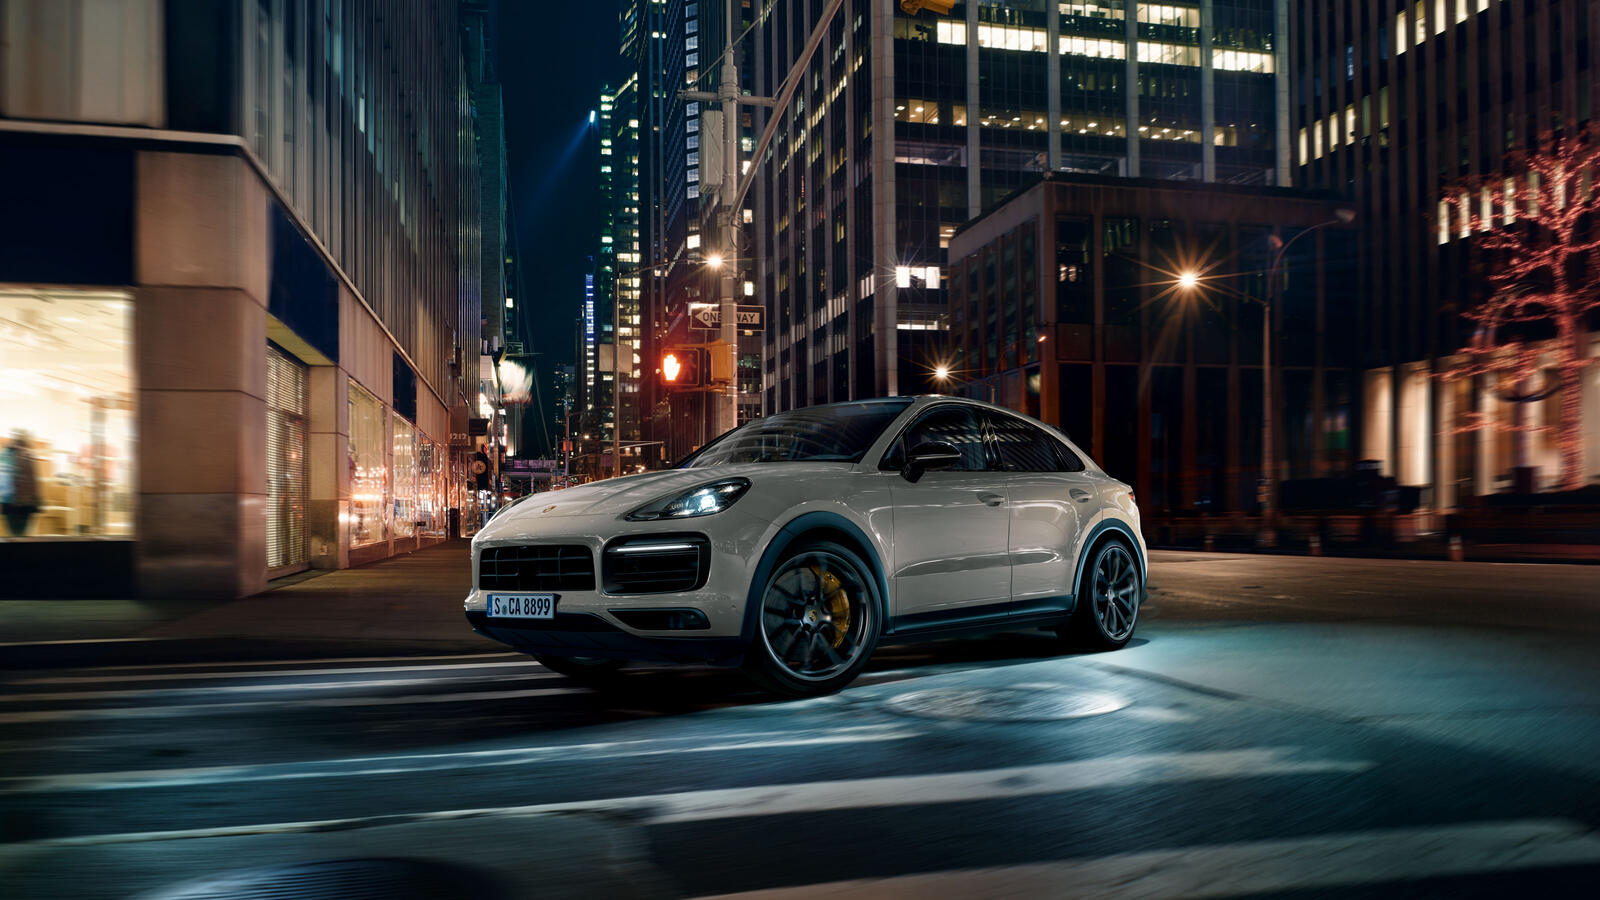 Porsche - Cayenne Coupé - Shaped by performance